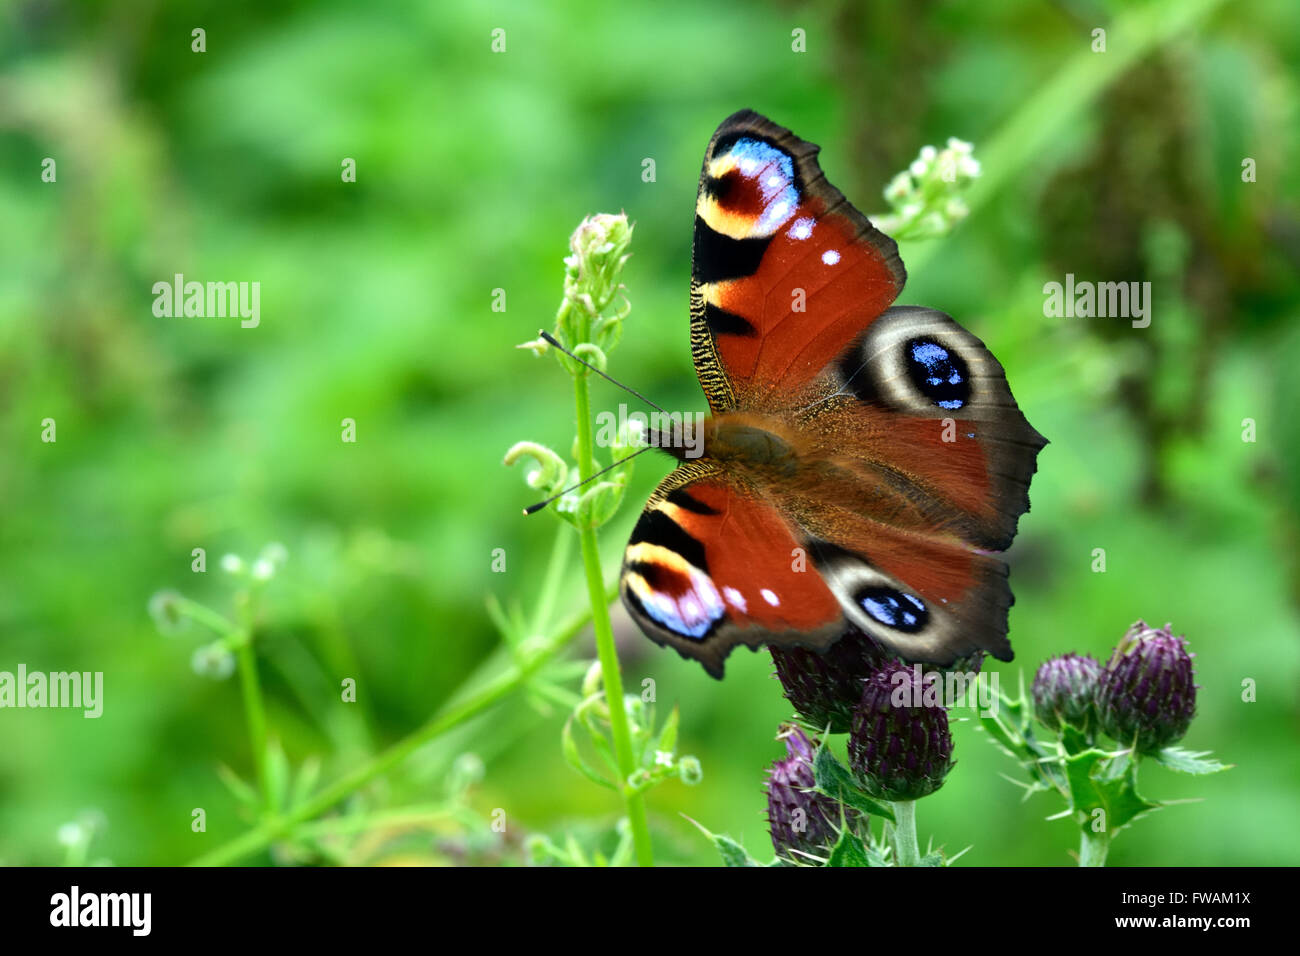 Peacock butterfly (Aglais io) on creeping thistle. A familiar and colourful butterfly in the family Nymphalidae - Stock Image